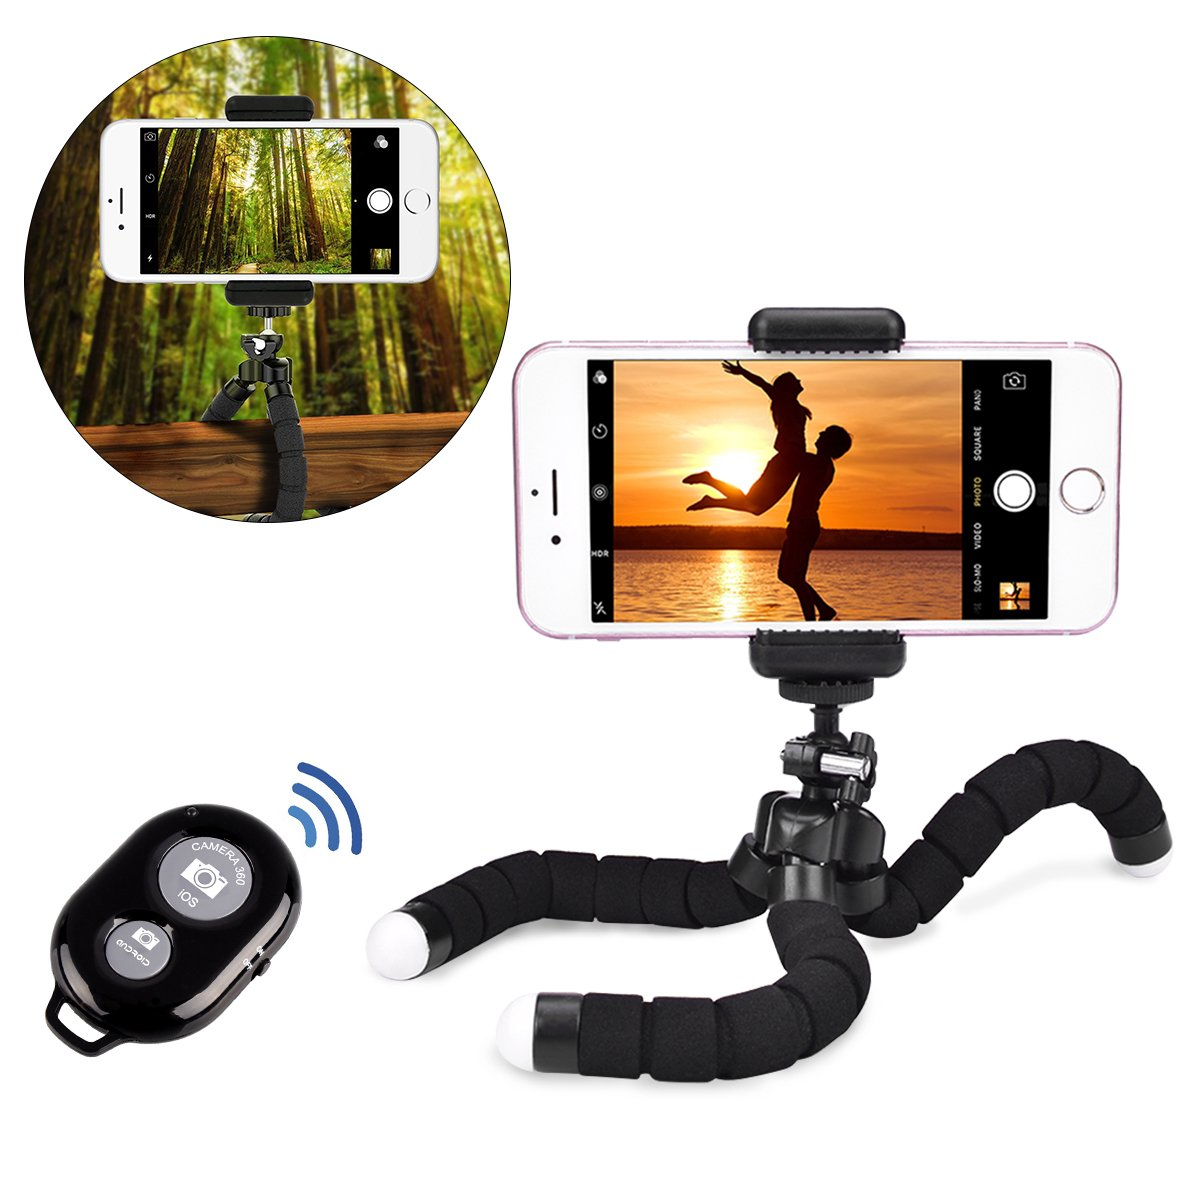 LLARIMIN Flexible Tripod Holder- Portable and Adjustable Octopus Style Tripod Stand Holder with Bluetooth Wireless Remote Shutter and Universal Clip for iPhone, Android Phone, Camera